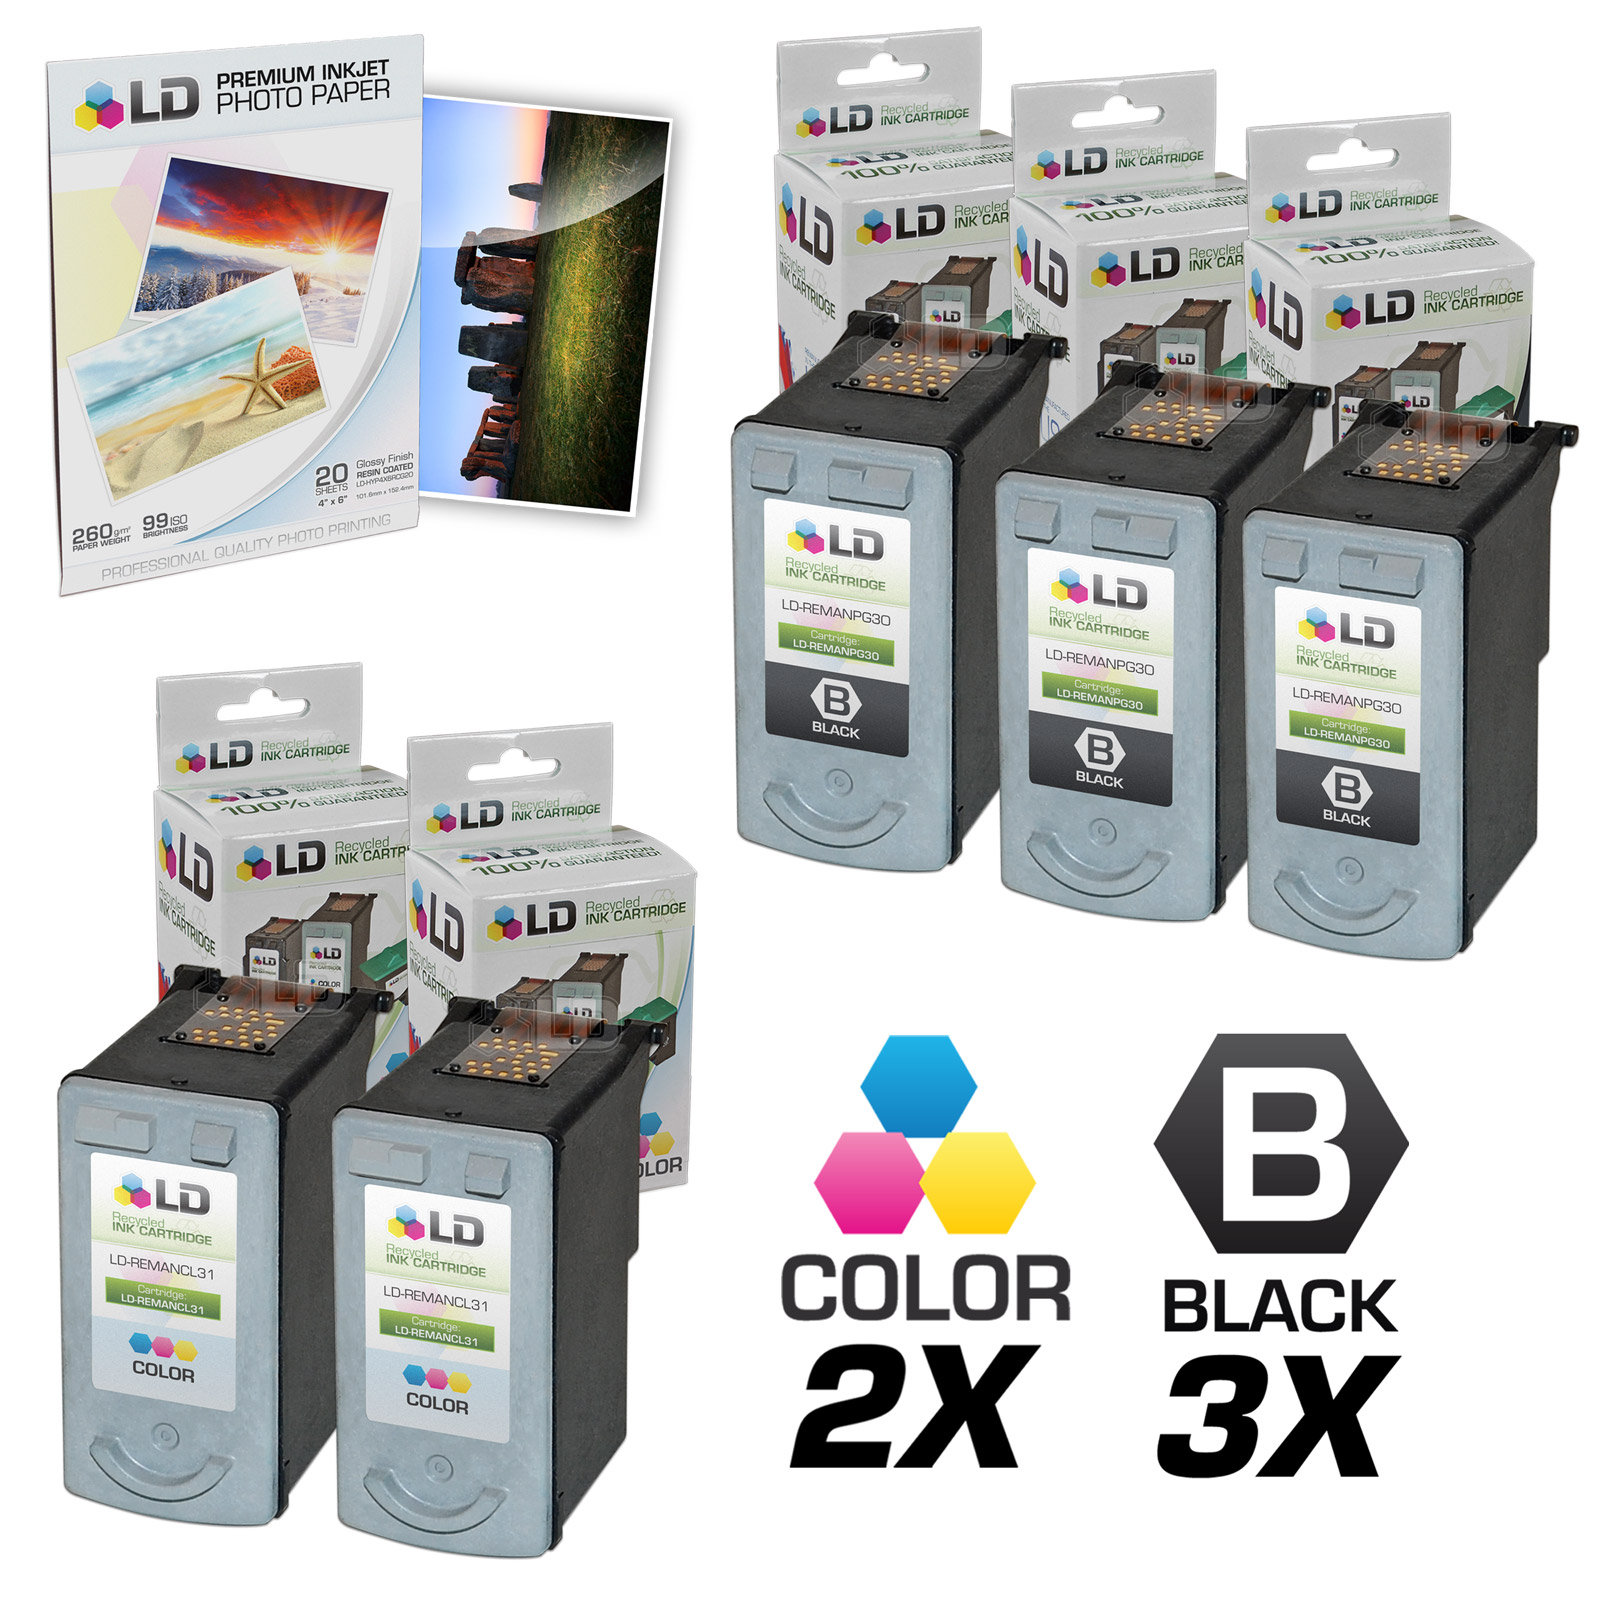 LD Remanufactured Canon #PG-30 & #CL-31 Combo Set - 3 Black #PG-30 and 2 Color #CL-31 & Free 20 Pack of LD Brand 4x6